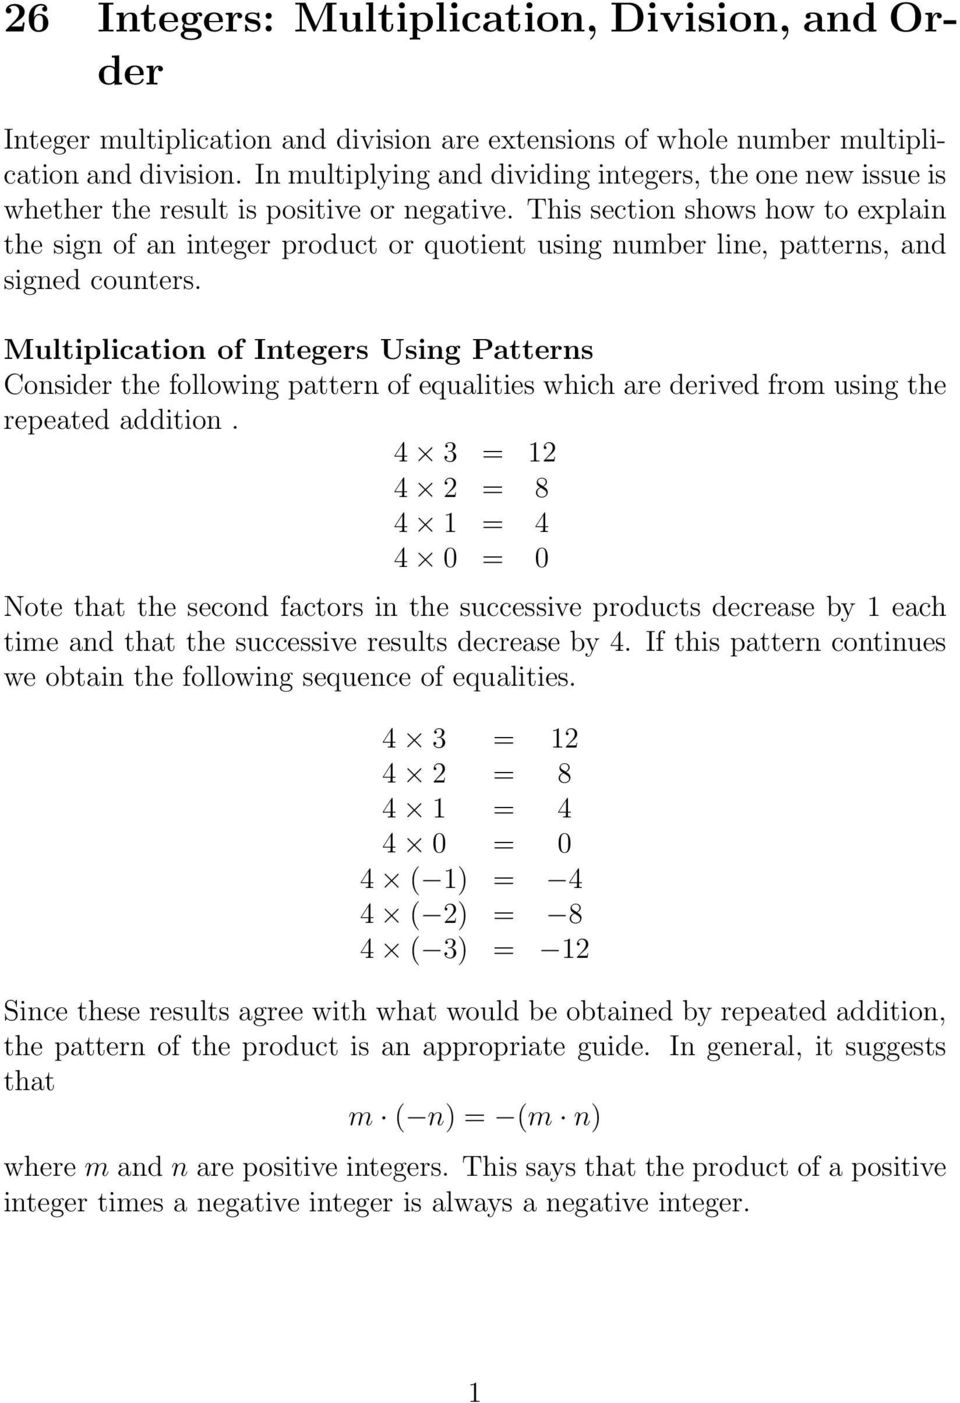 This section shows how to explain the sign of an integer product or quotient using number line, patterns, and signed counters.